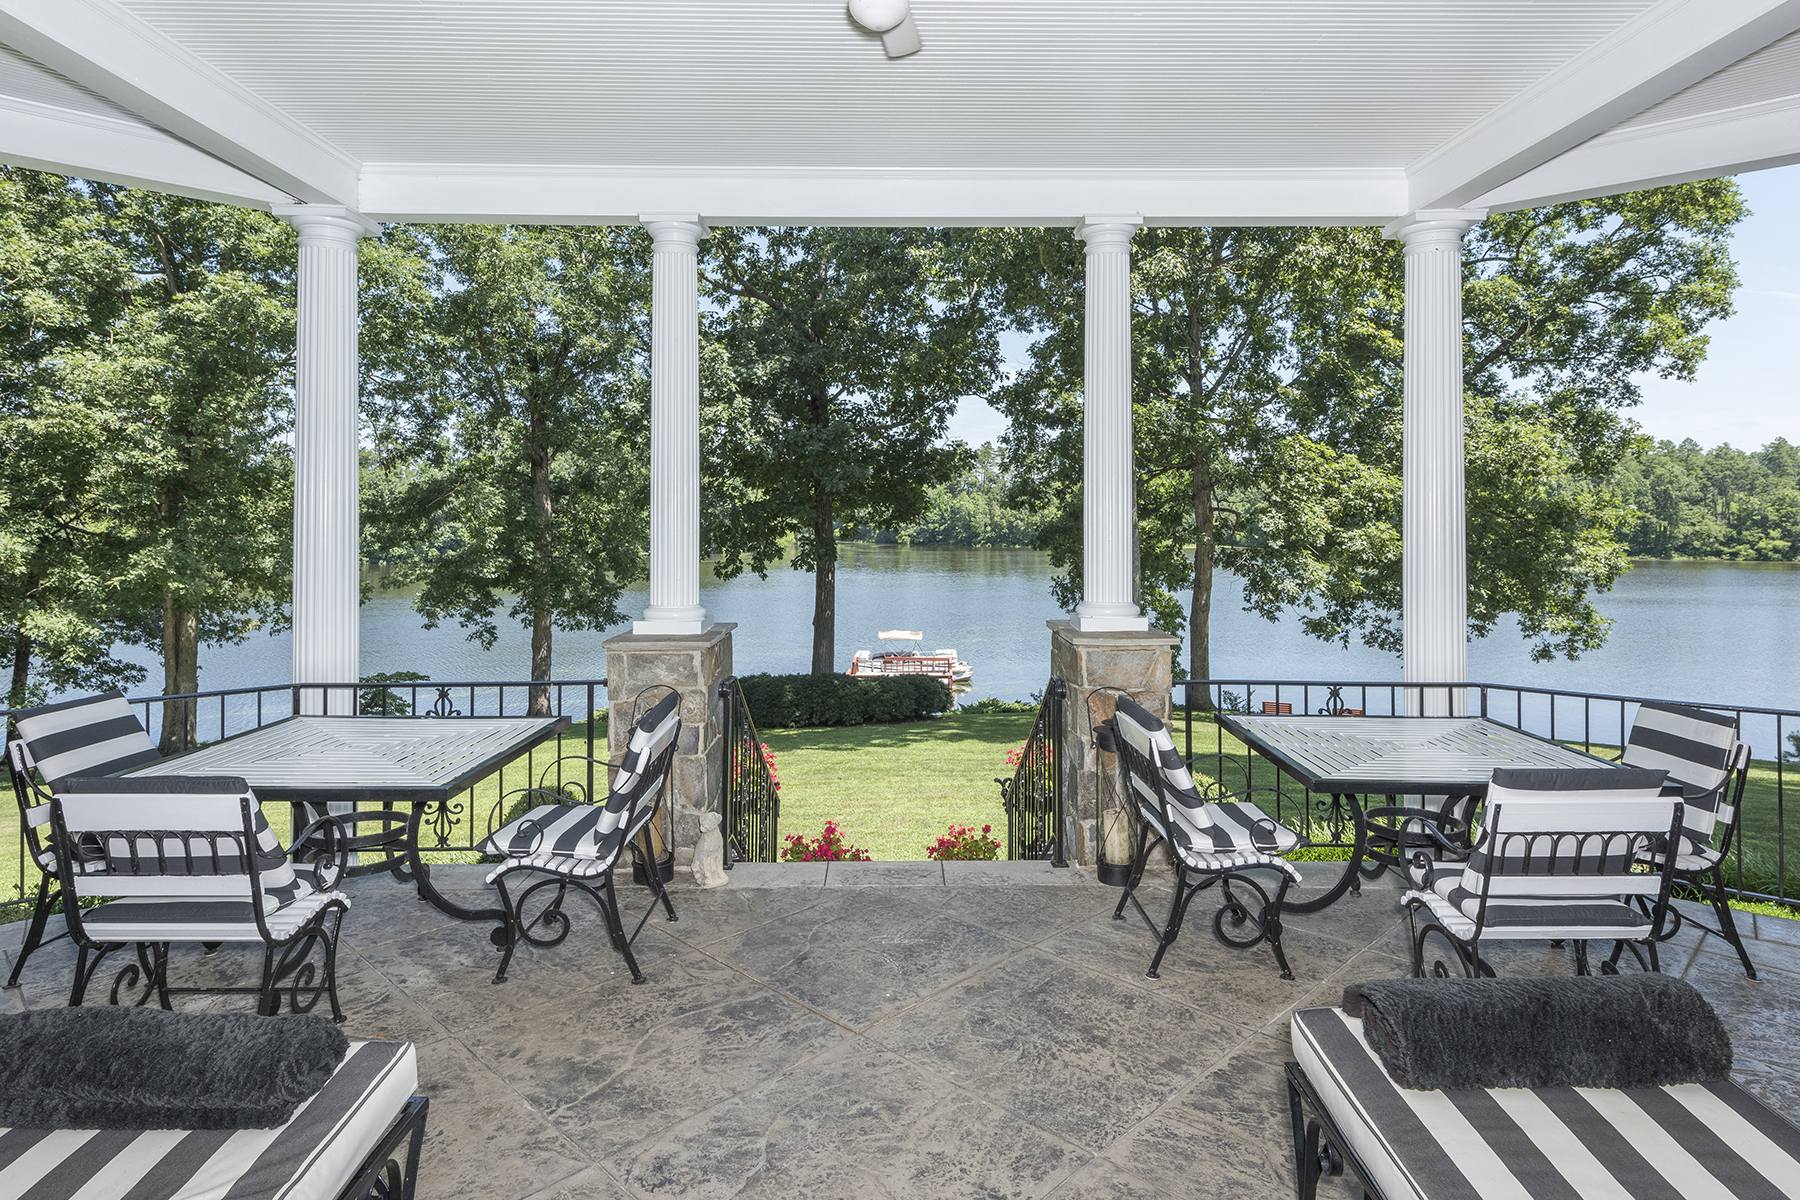 Additional photo for property listing at LAKE POINTE 3719  Heron Point Dr,  Monroe, North Carolina 28110 United States